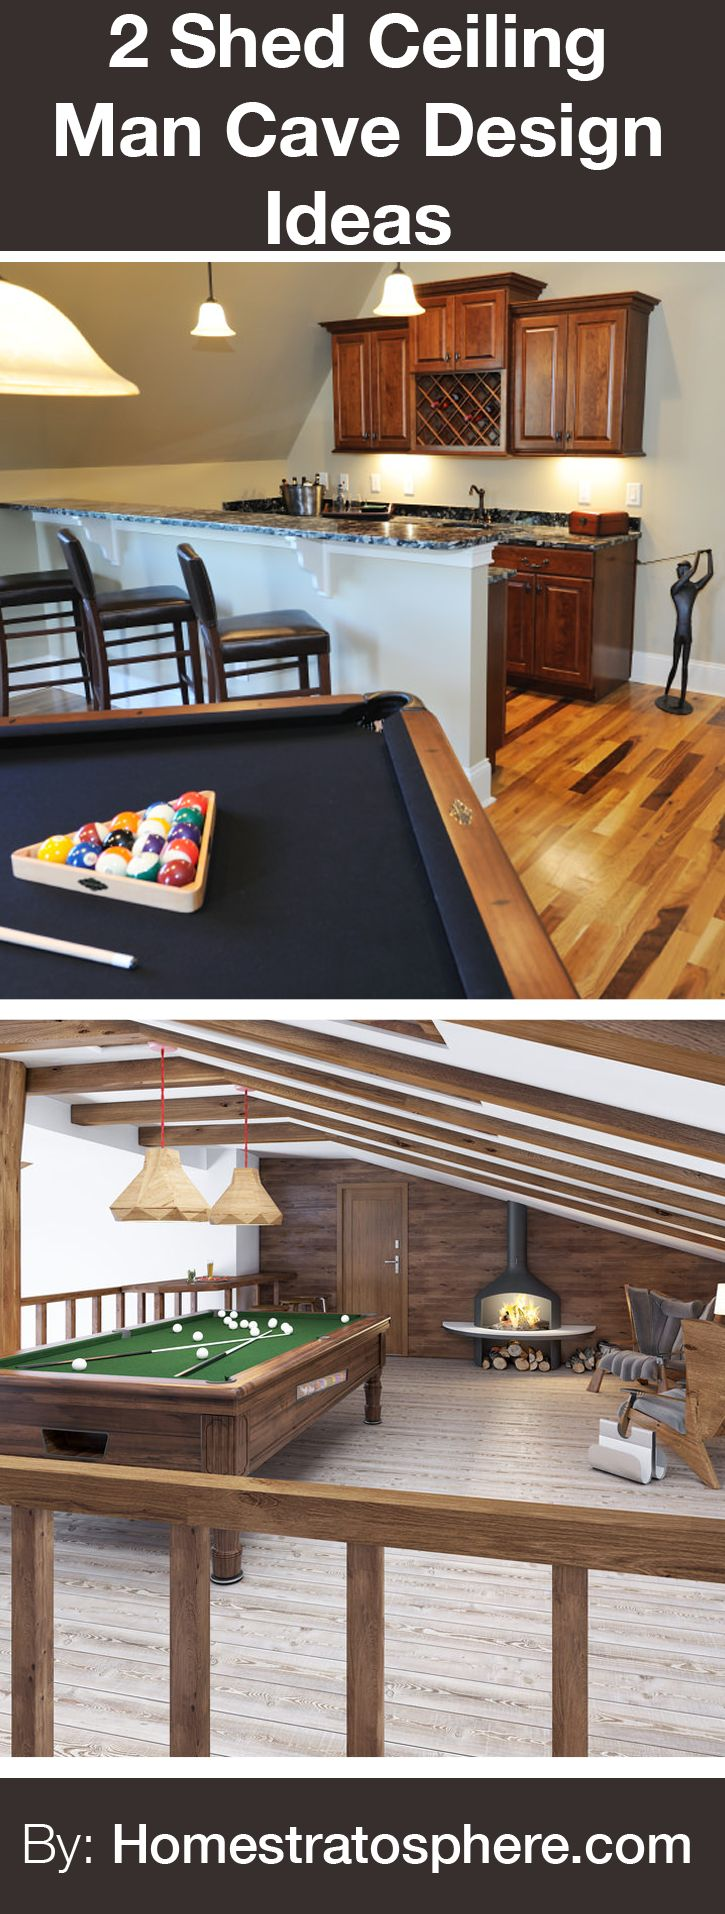 Best 25+ Man cave shed ideas on Pinterest | Man shed ...